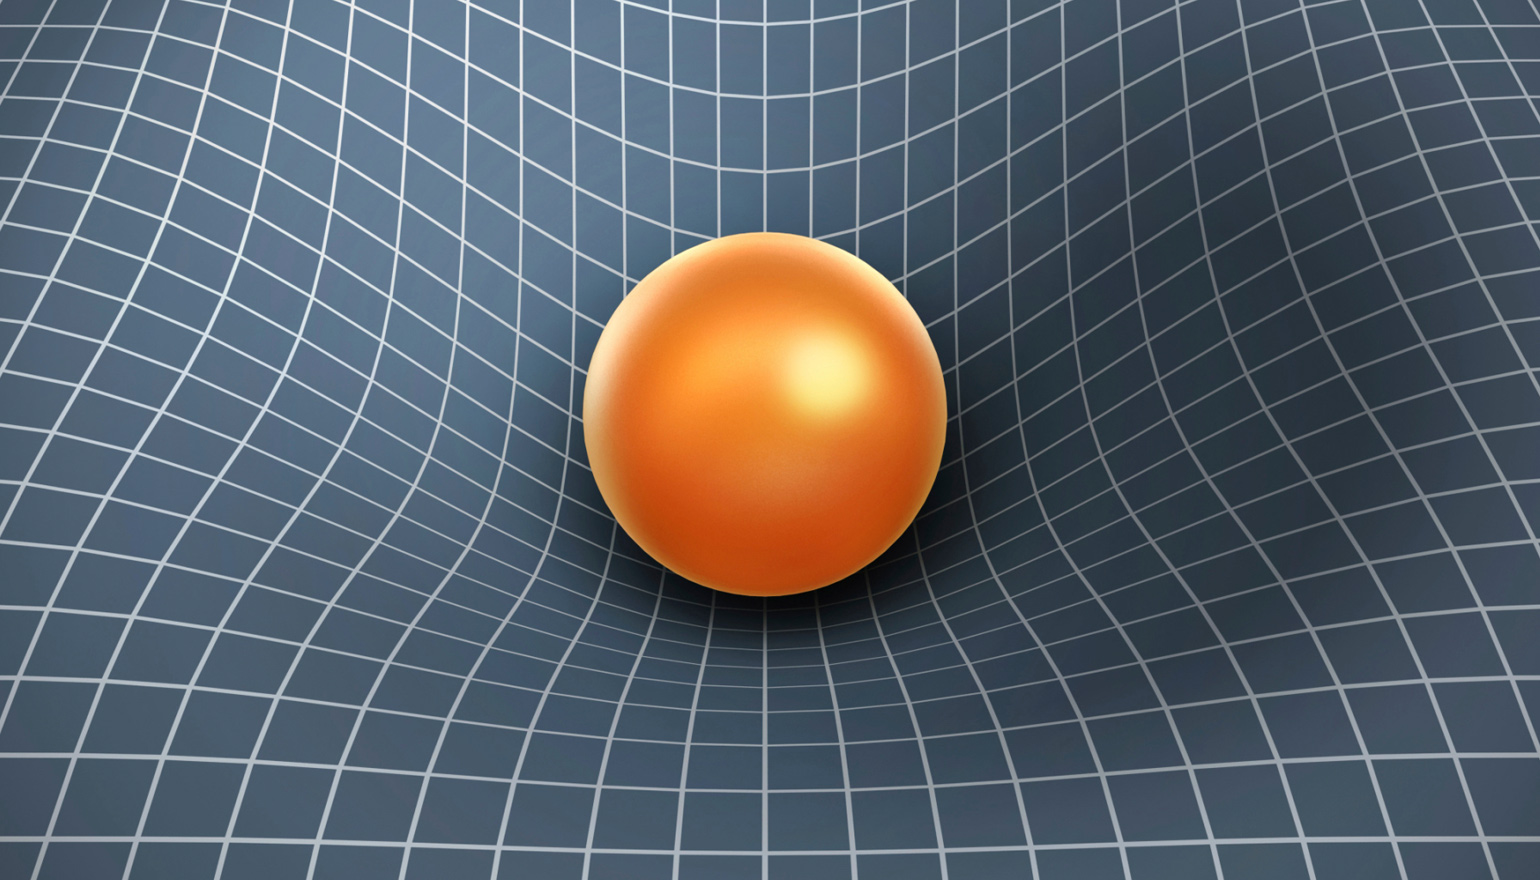 Ball weighing down on grid